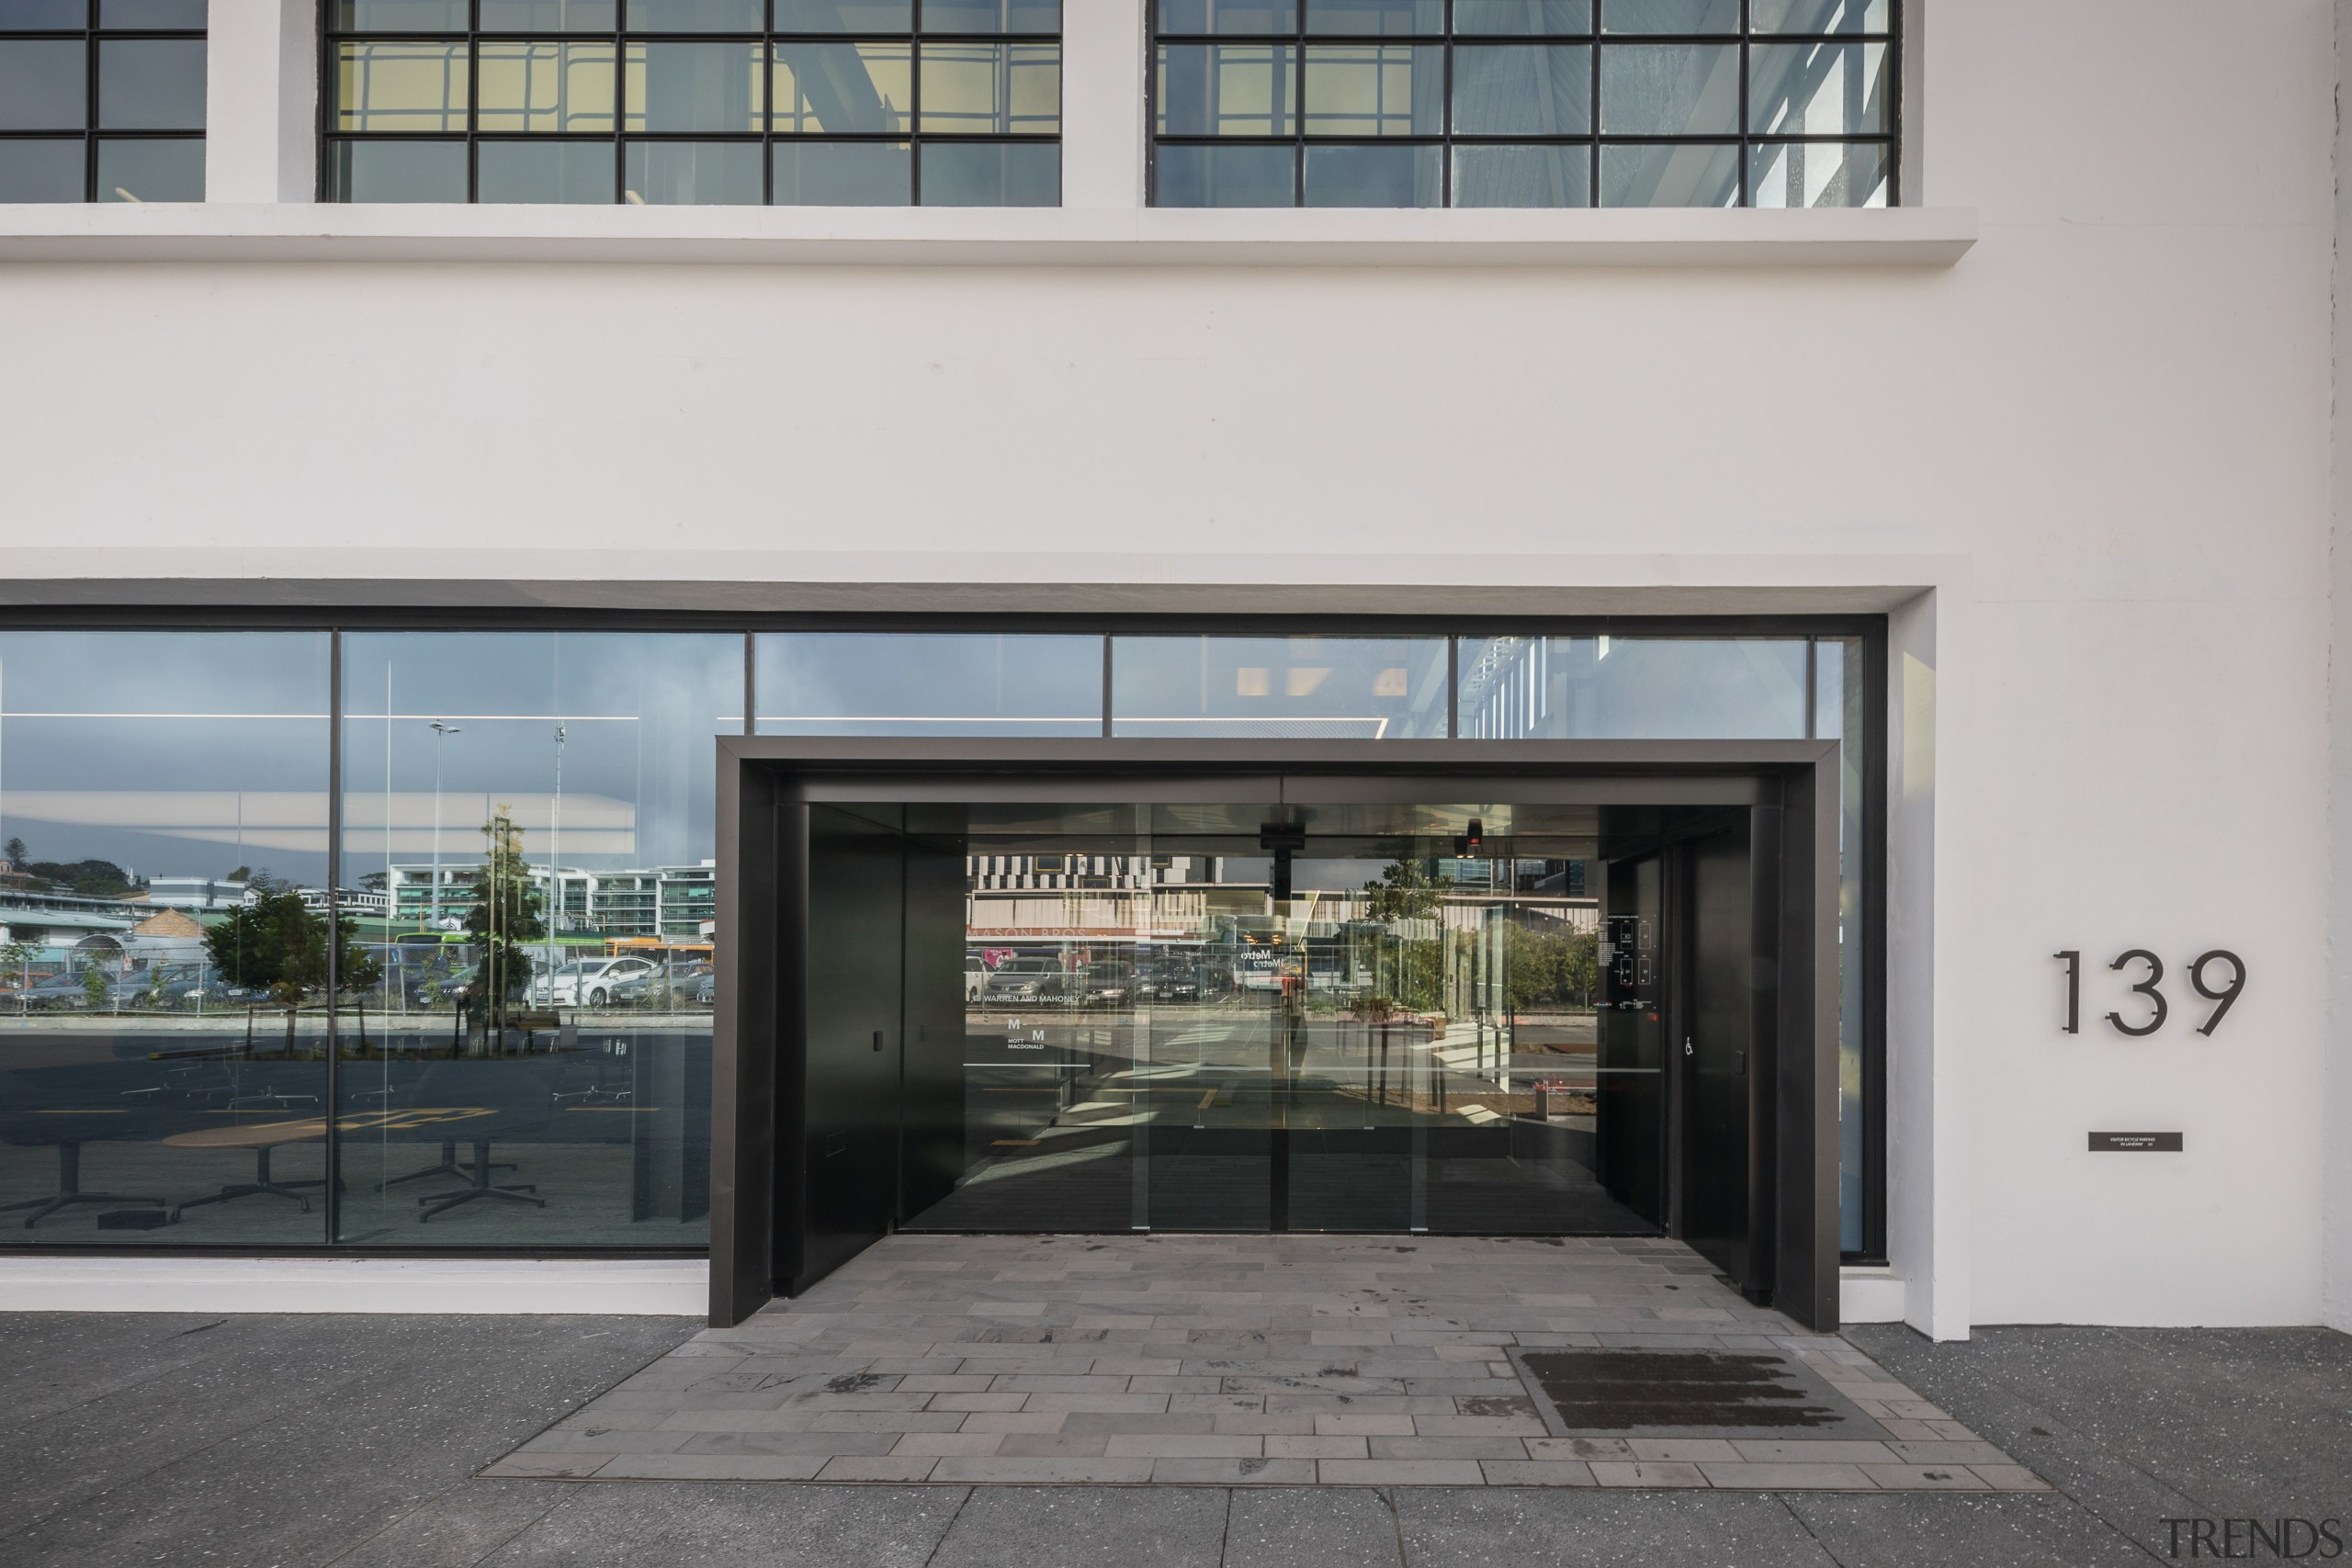 The front entry to architects Warren and Mahoneys building, door, facade, gray